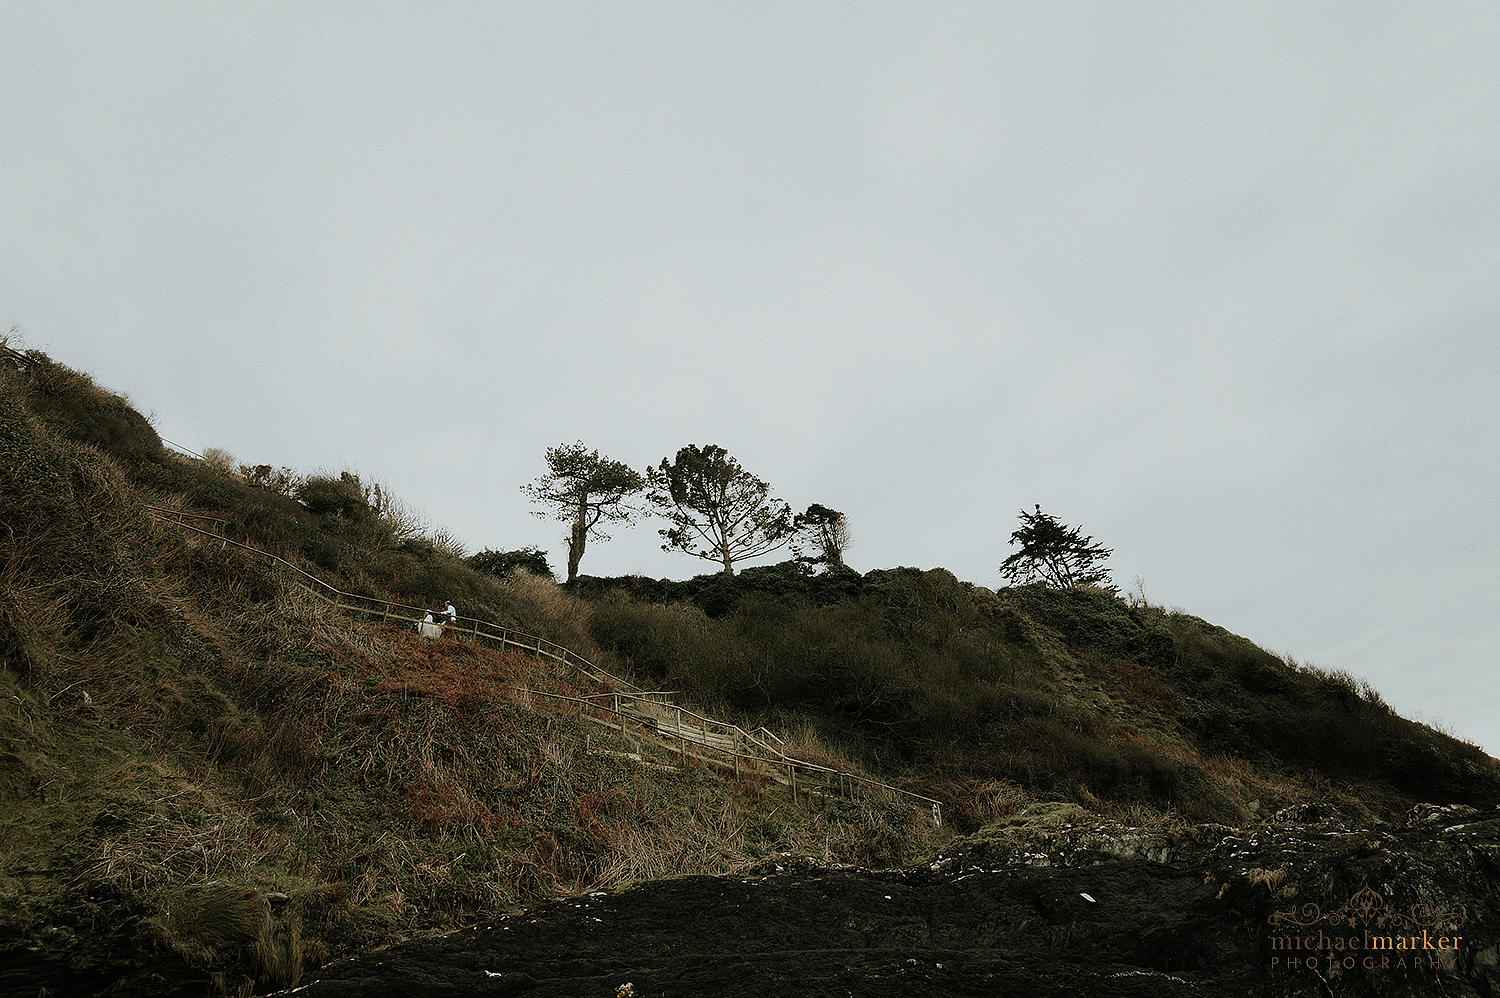 Walking up the cliff path at Polhawn fort in Cornwall